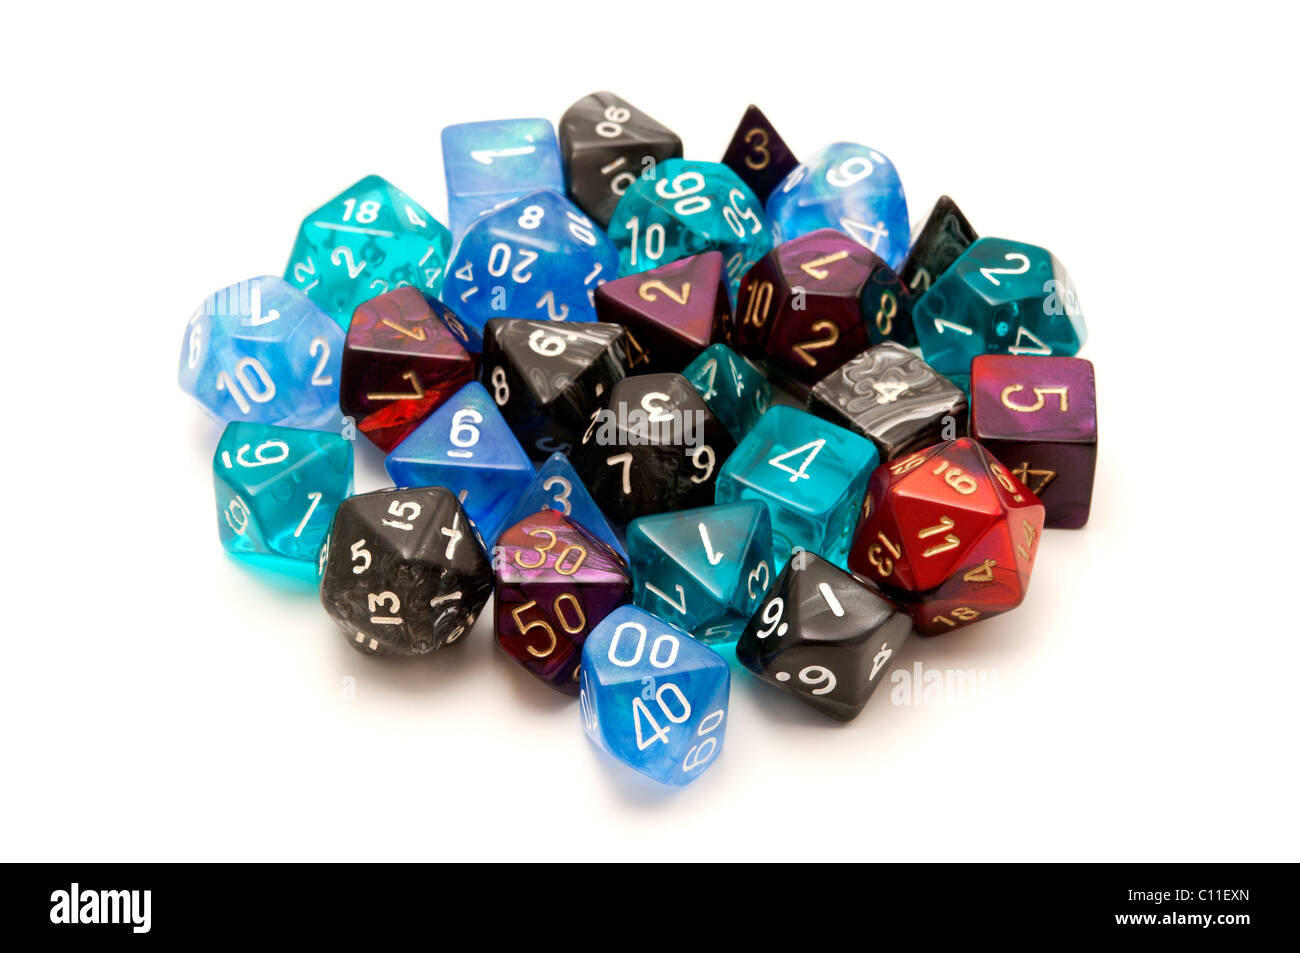 Role-playing dices on a white background - Stock Image